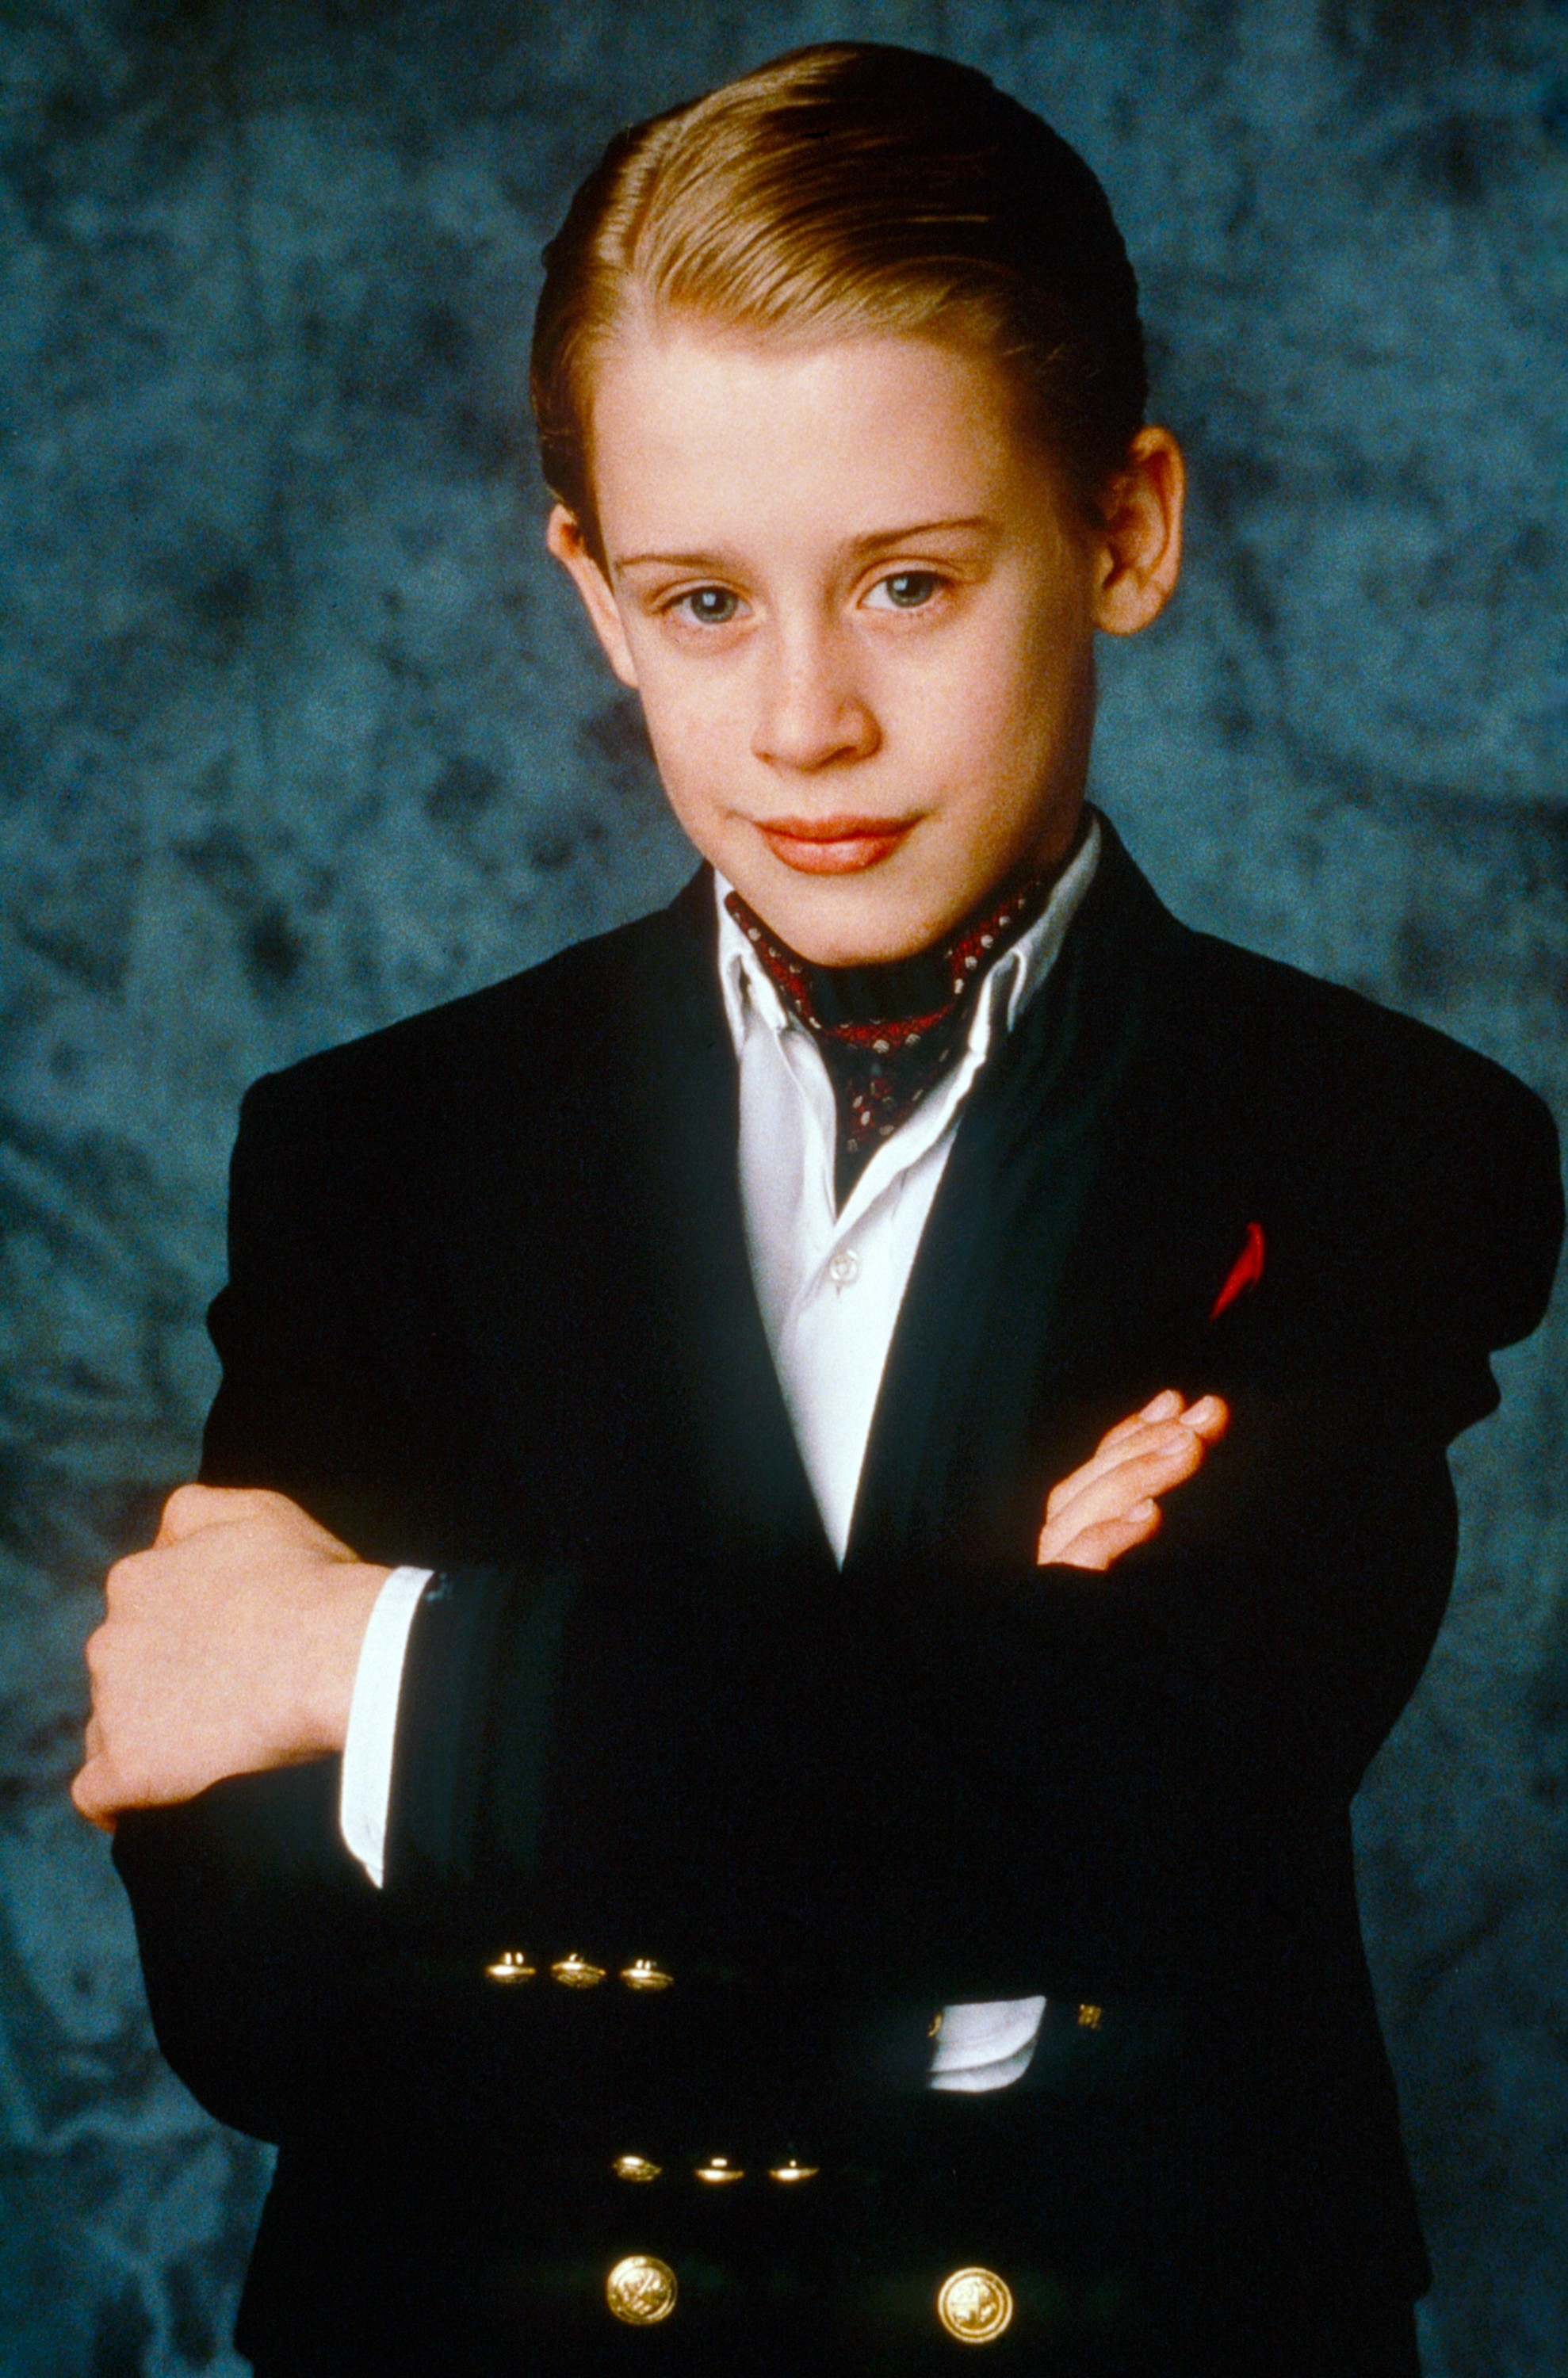 Macaulay Culkin in 'Richie Rich'. 1994